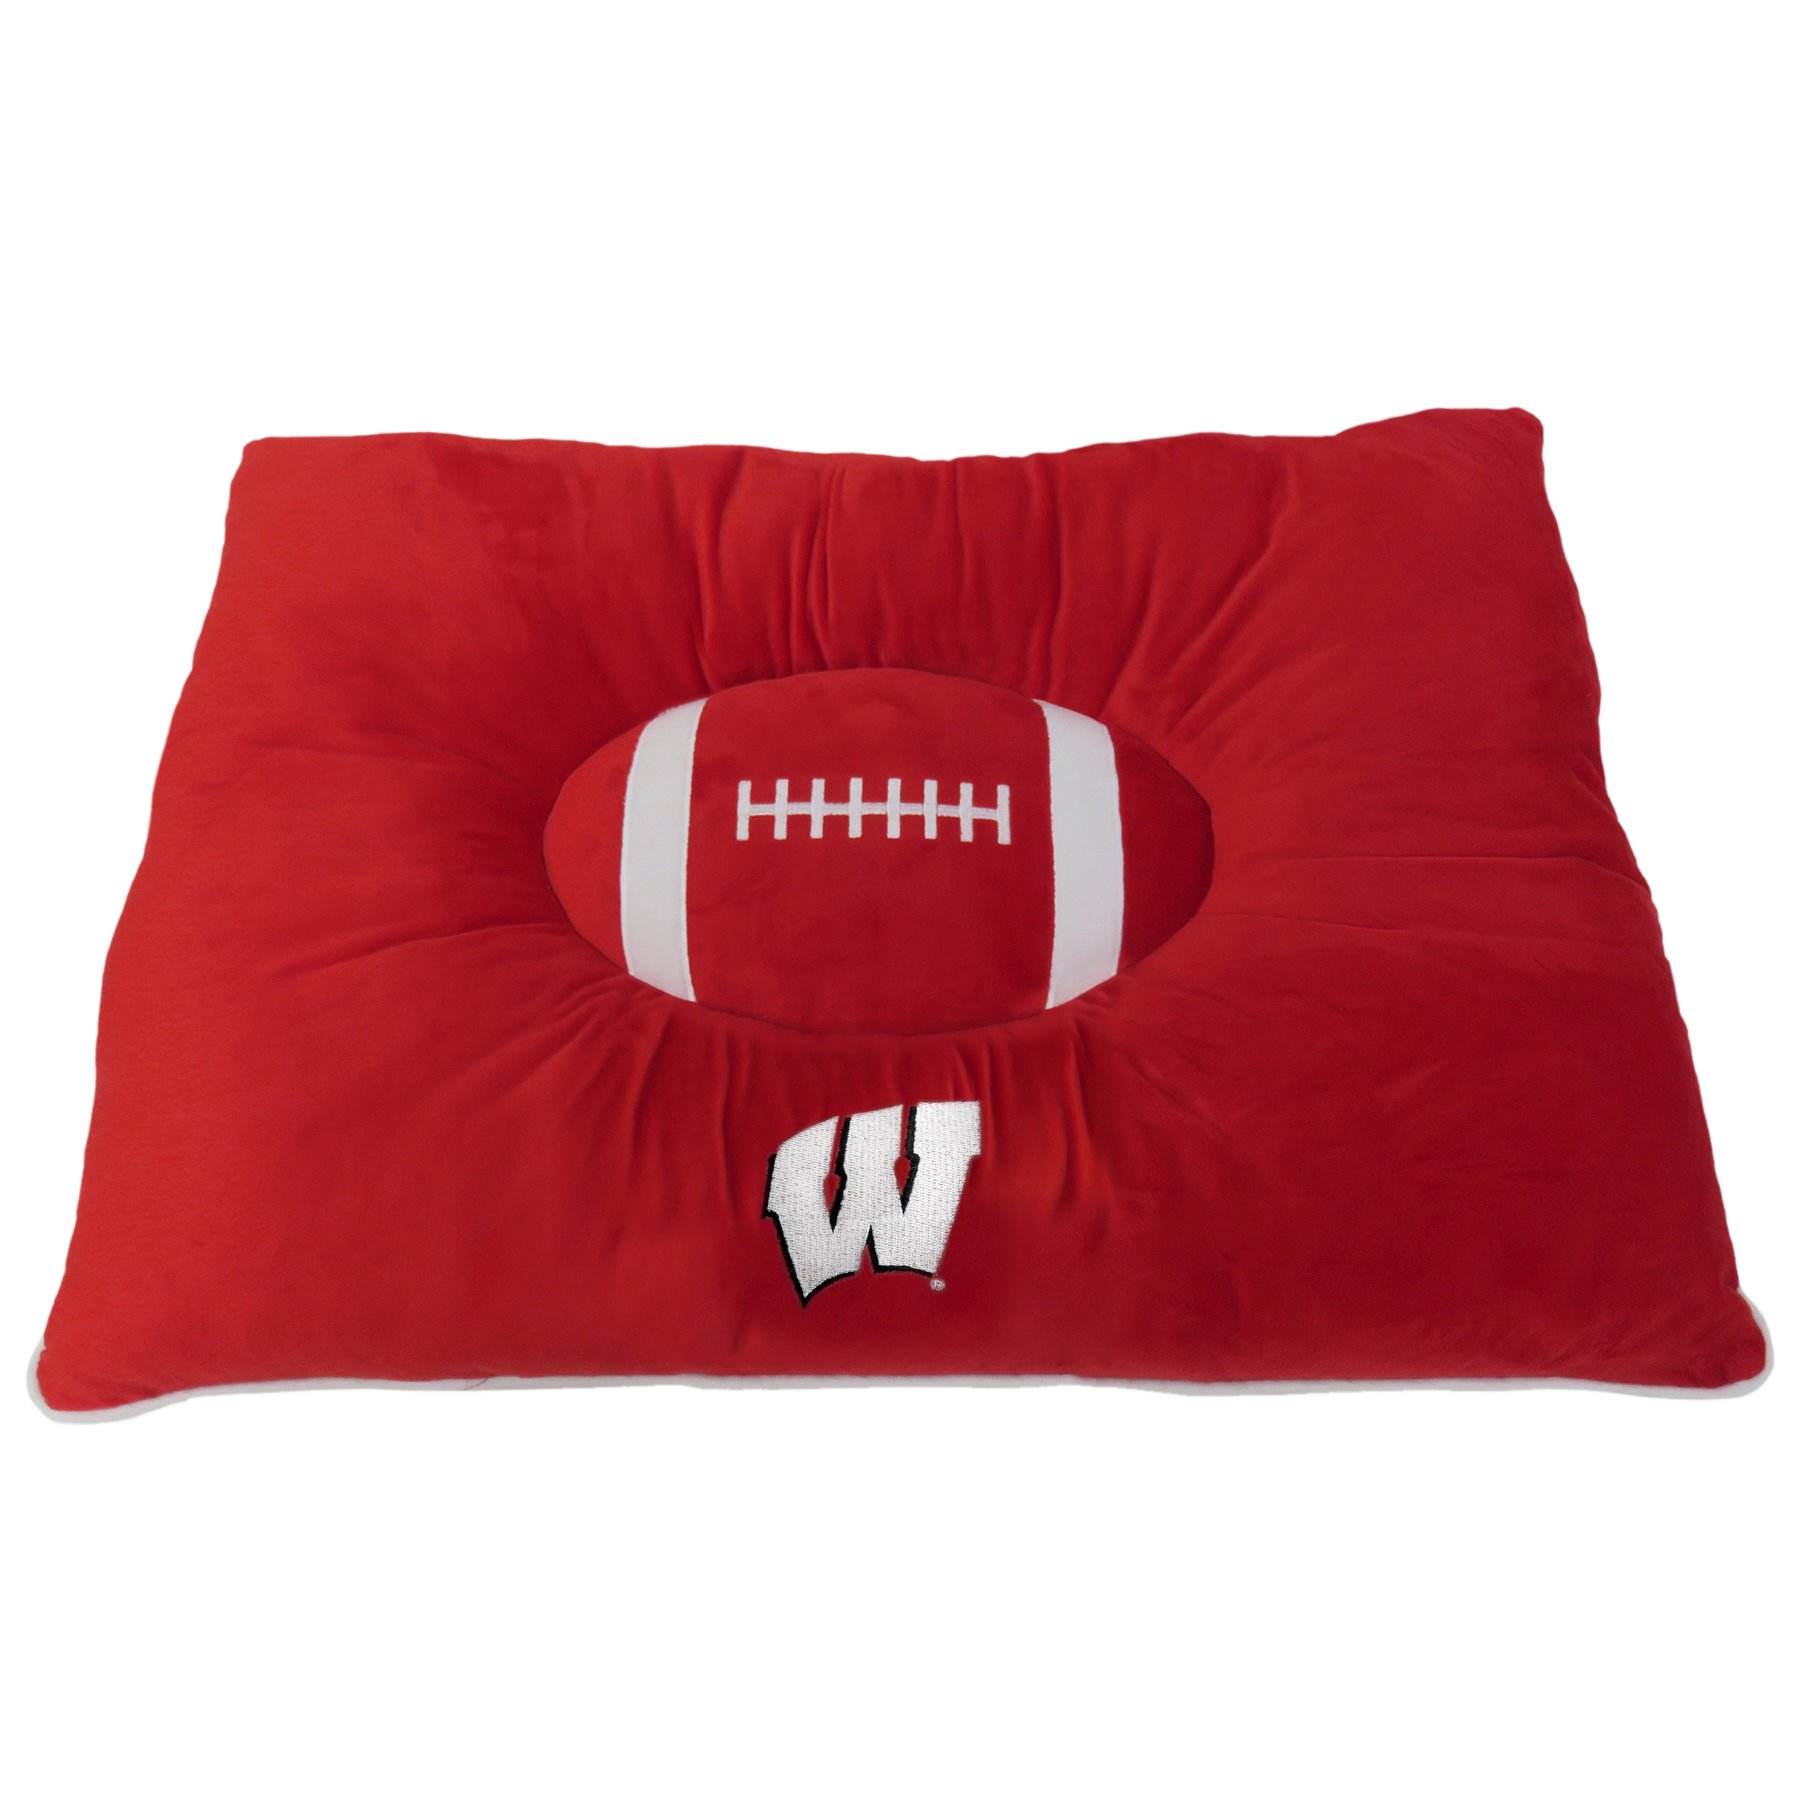 "NCAA PET BED - Wisconsin Badgers ""Soft & Cozy"" Plush Pillow Bed. - FOOTBALL DOG BED. Cuddle, Warm Collegiate Mattress BED for CATS & DOGS"